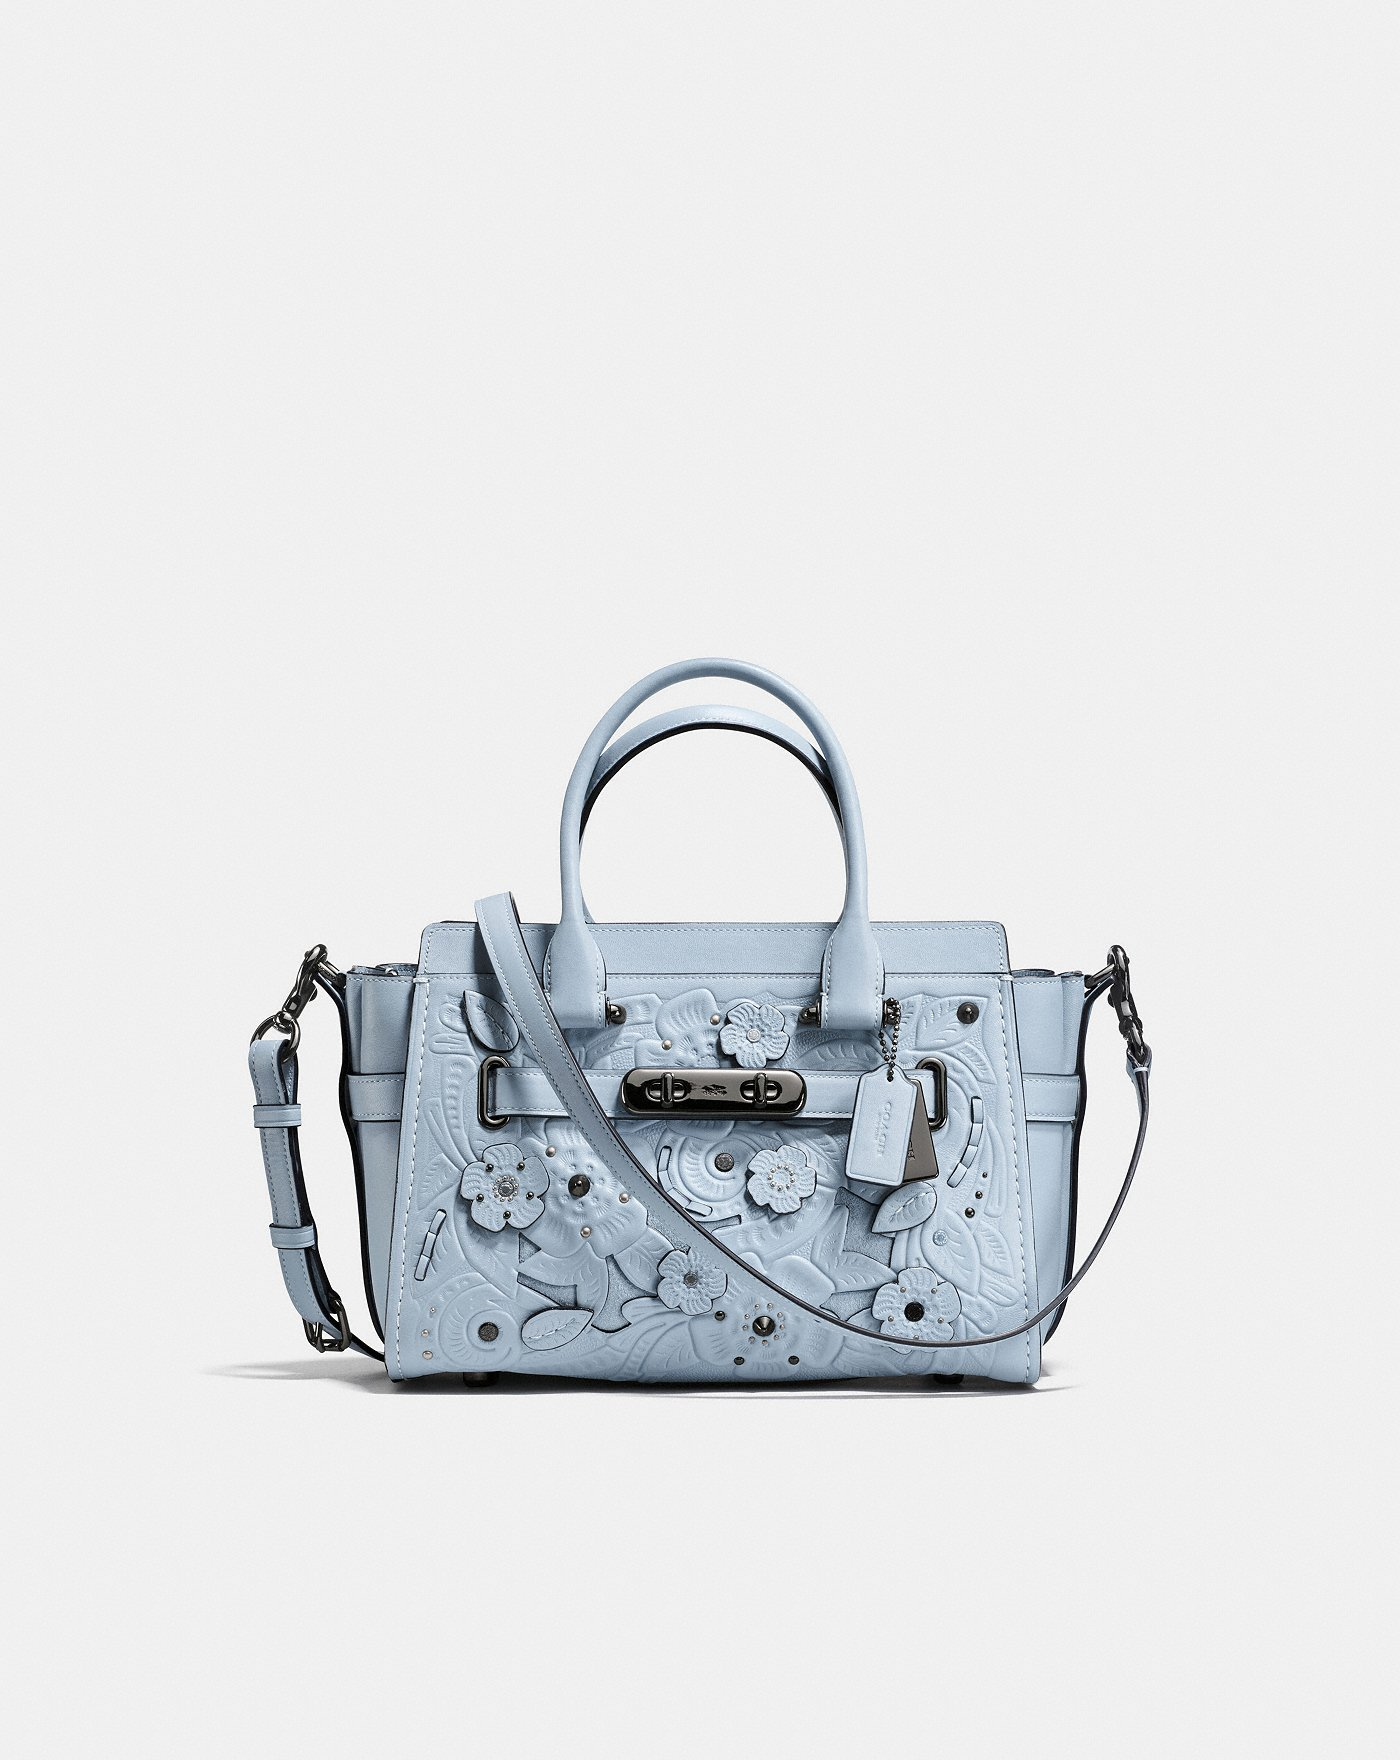 b920d5478d Coach Swagger 27 Bag with Tea Rose Accents in a gorgeous dusty blue |  colorful handbags